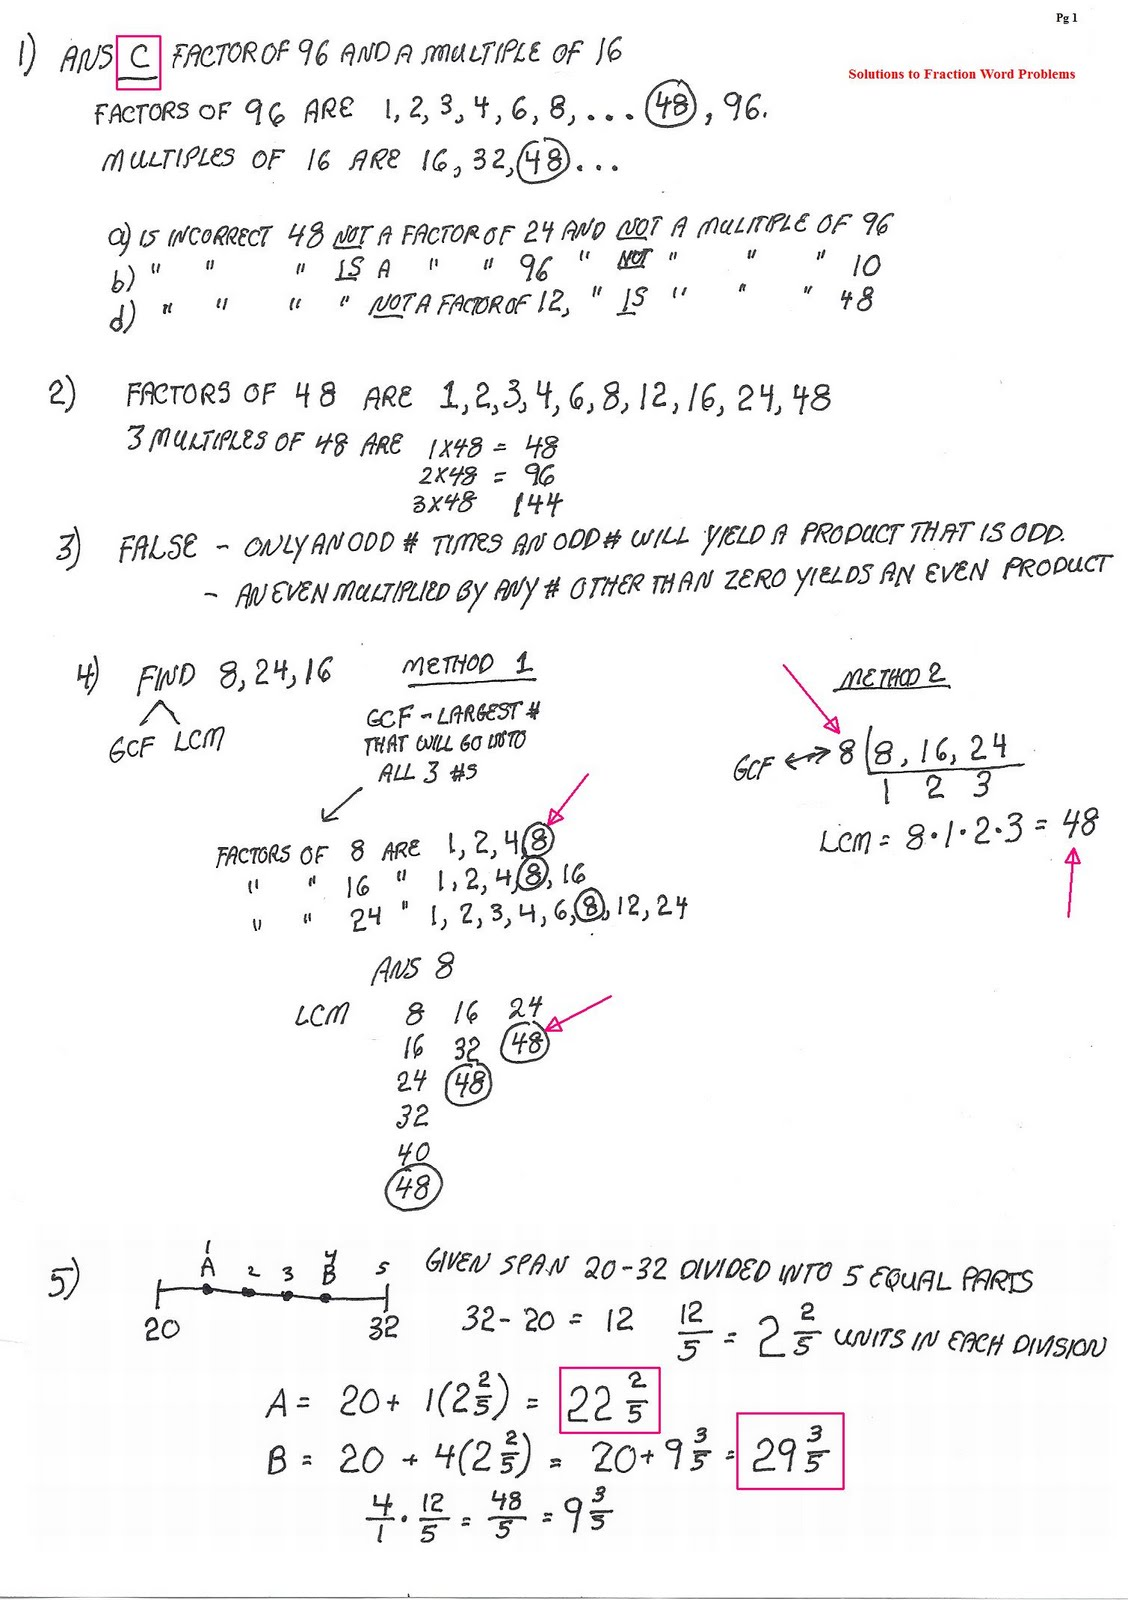 math worksheet : cobb adult ed math answers to original fraction word problems : Fraction Problems With Answers Worksheet